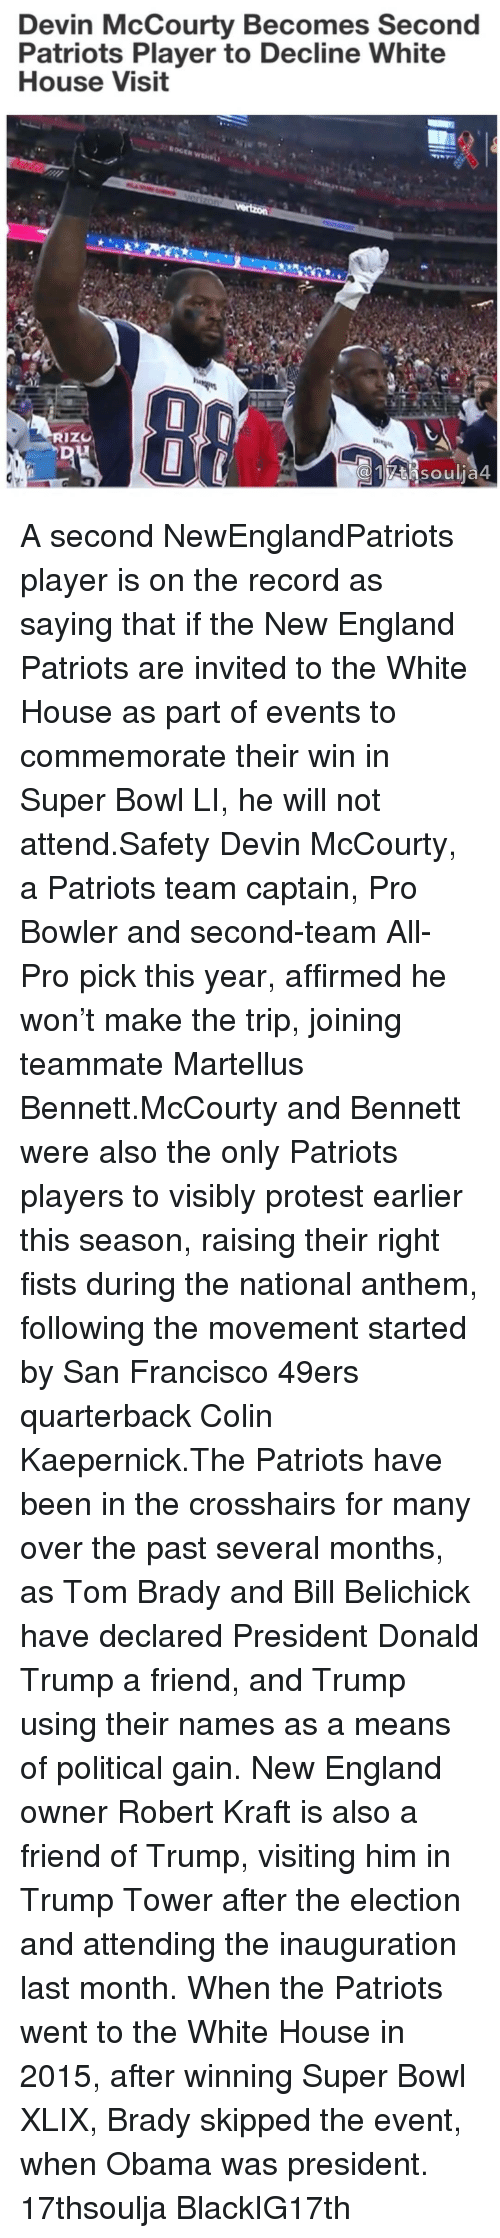 Politeism: Devin McCourty Becomes Second  Patriots Player to Decline White  House Visit  RIZU  SO u A second NewEnglandPatriots player is on the record as saying that if the New England Patriots are invited to the White House as part of events to commemorate their win in Super Bowl LI, he will not attend.Safety Devin McCourty, a Patriots team captain, Pro Bowler and second-team All-Pro pick this year, affirmed he won't make the trip, joining teammate Martellus Bennett.McCourty and Bennett were also the only Patriots players to visibly protest earlier this season, raising their right fists during the national anthem, following the movement started by San Francisco 49ers quarterback Colin Kaepernick.The Patriots have been in the crosshairs for many over the past several months, as Tom Brady and Bill Belichick have declared President Donald Trump a friend, and Trump using their names as a means of political gain. New England owner Robert Kraft is also a friend of Trump, visiting him in Trump Tower after the election and attending the inauguration last month. When the Patriots went to the White House in 2015, after winning Super Bowl XLIX, Brady skipped the event, when Obama was president. 17thsoulja BlackIG17th